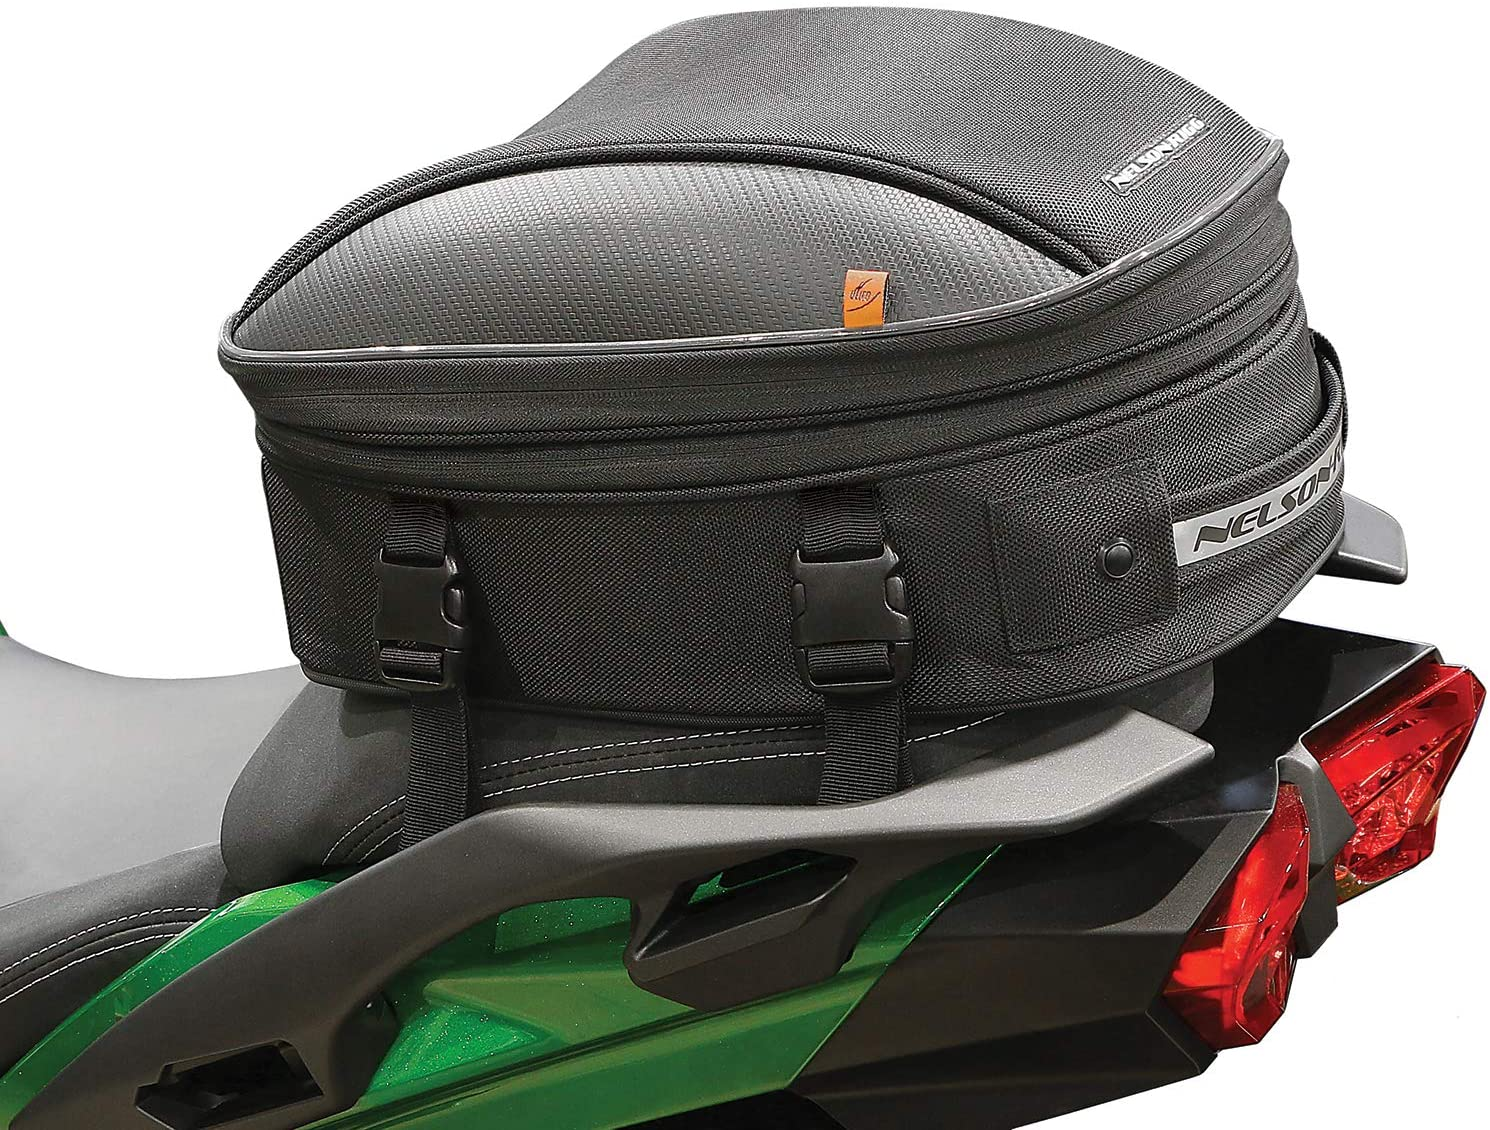 Saddle Bags Nelson-Rigg CL-1060-R Black Commuter Lite Motorcycle ...